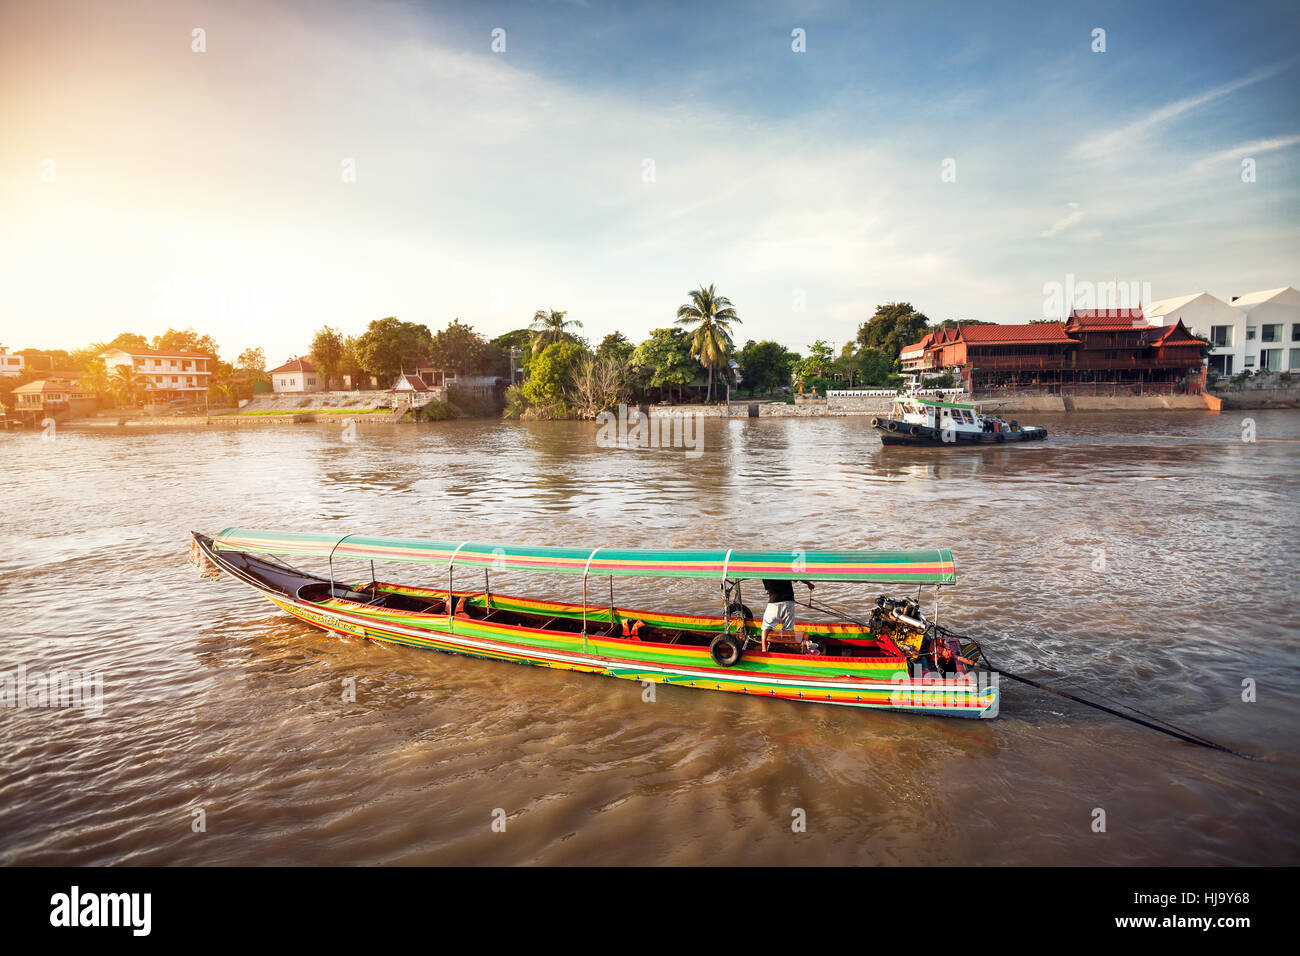 Longtail boat cruise by Chao Phraya river in Ancient city Ayutthaya, Thailand - Stock Image